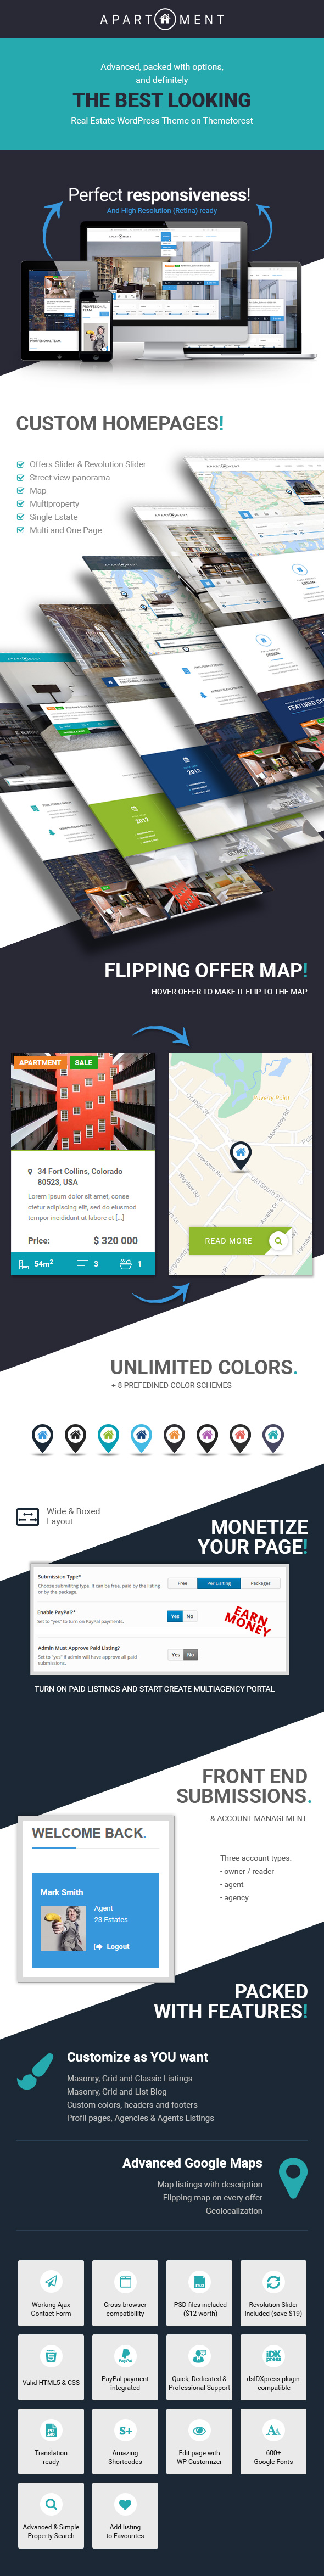 apartment wp real estate responsive wordpress theme for agents portals single property sites